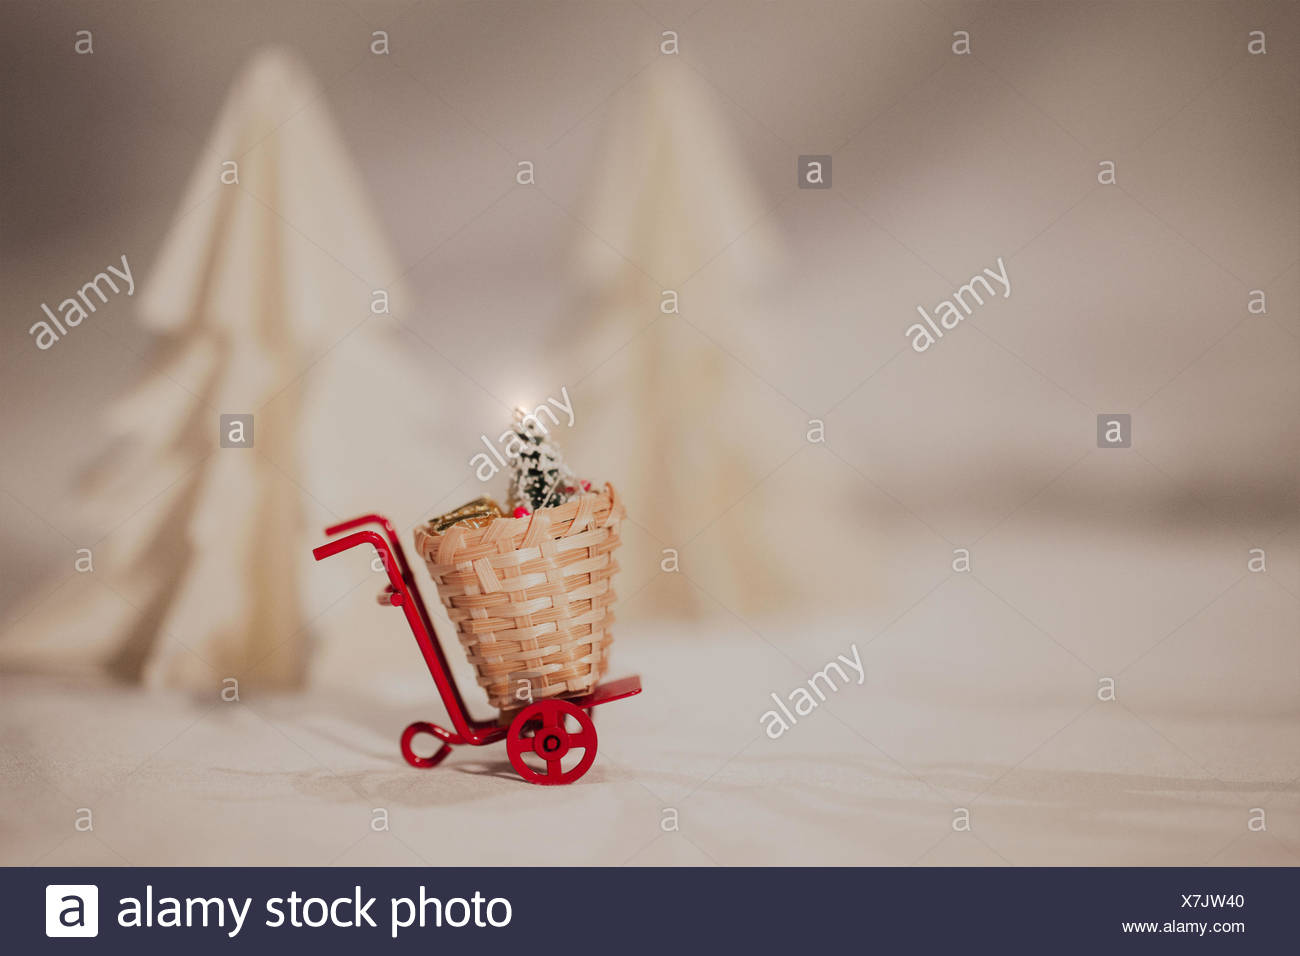 1 object,basket,beautiful,christmas,christmas tree,decoration,decorative,design,fir,handmade,isolated,japan,love,object,origami,origami fir,paper,paper fir,paper tree,pastel color,purple,red,red carts,romantic,shape,traditional,trendy,vector,white - Stock Image